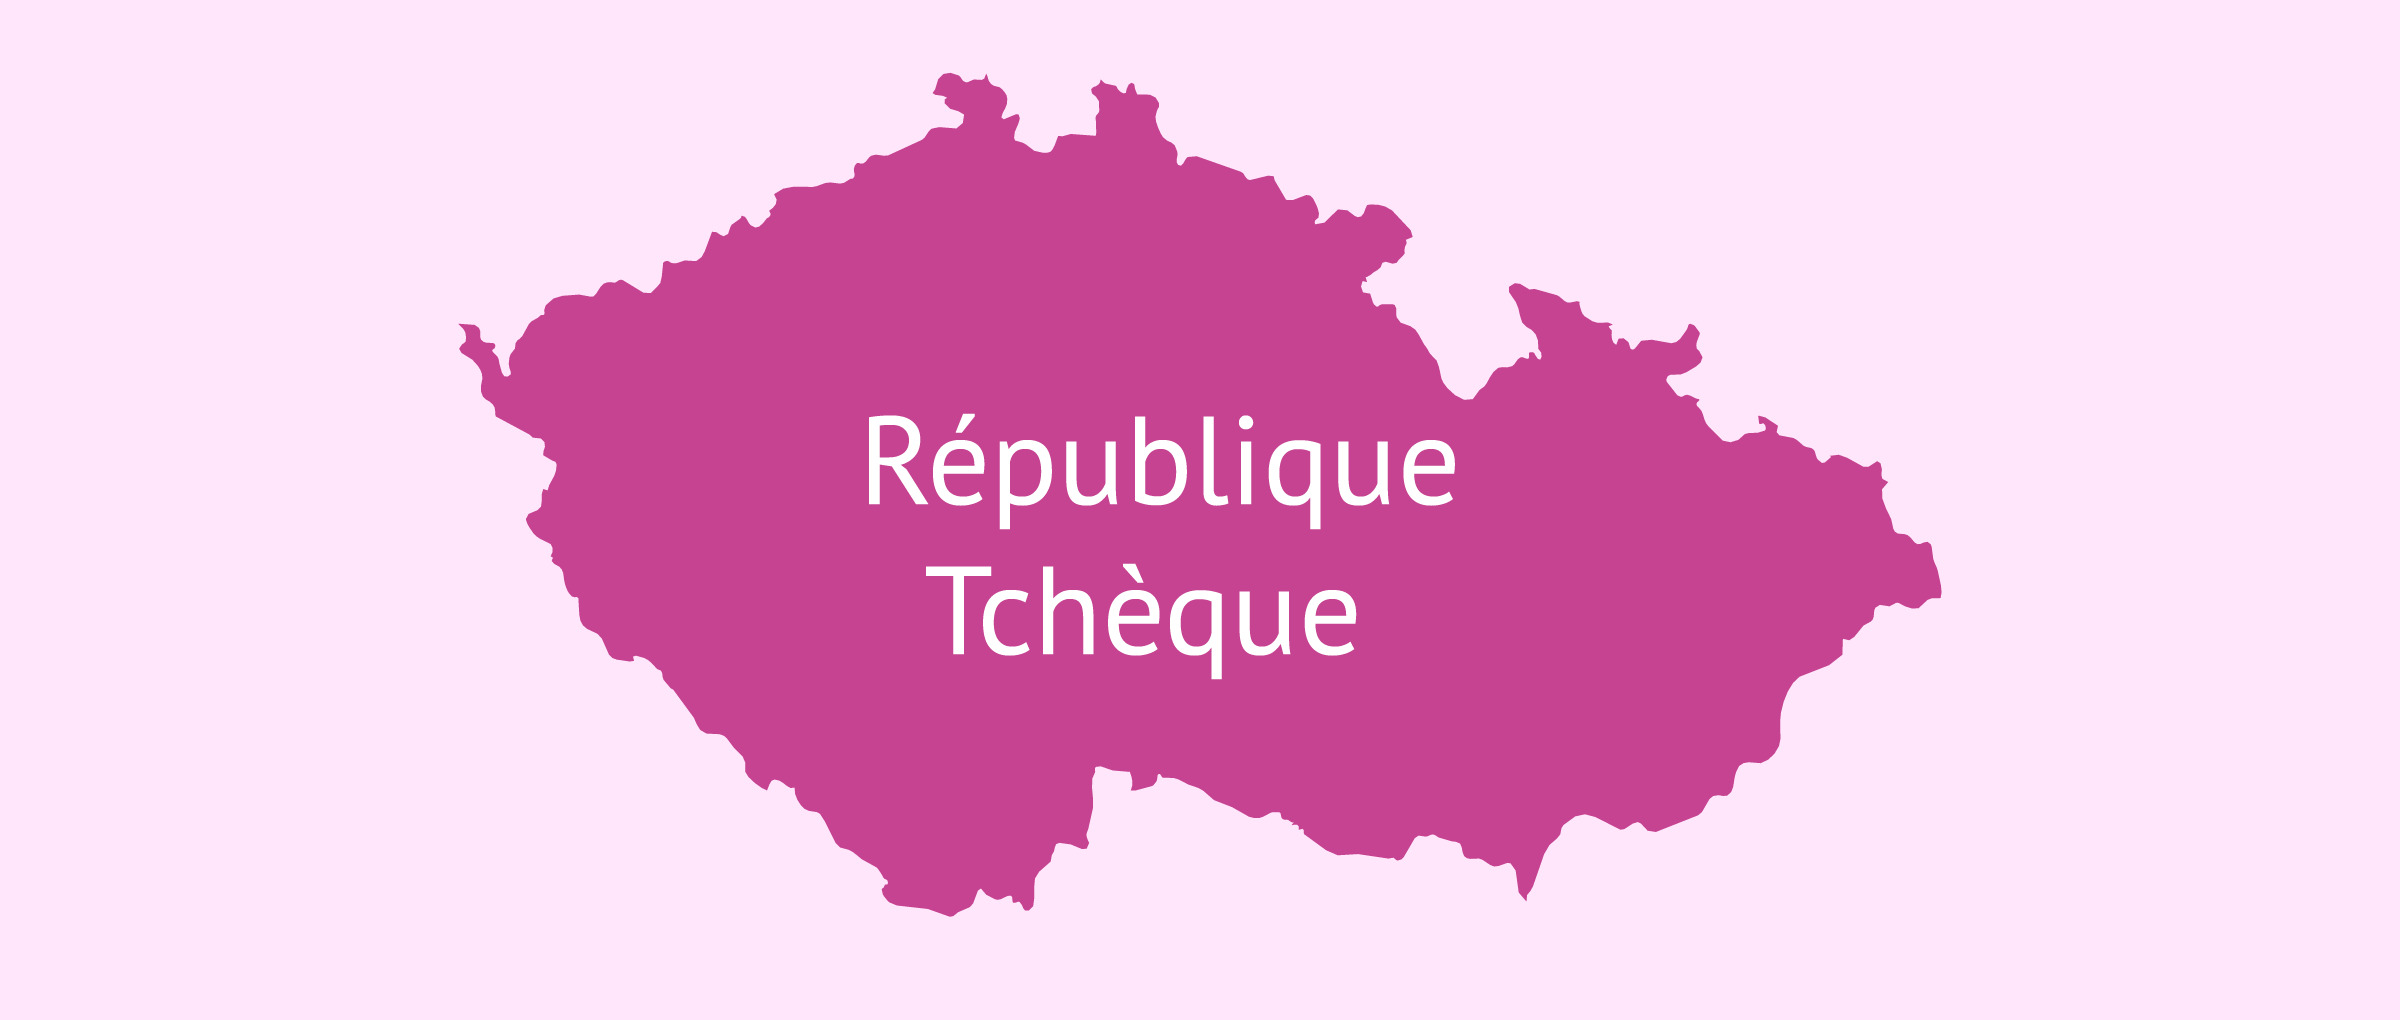 Republique Tcheque